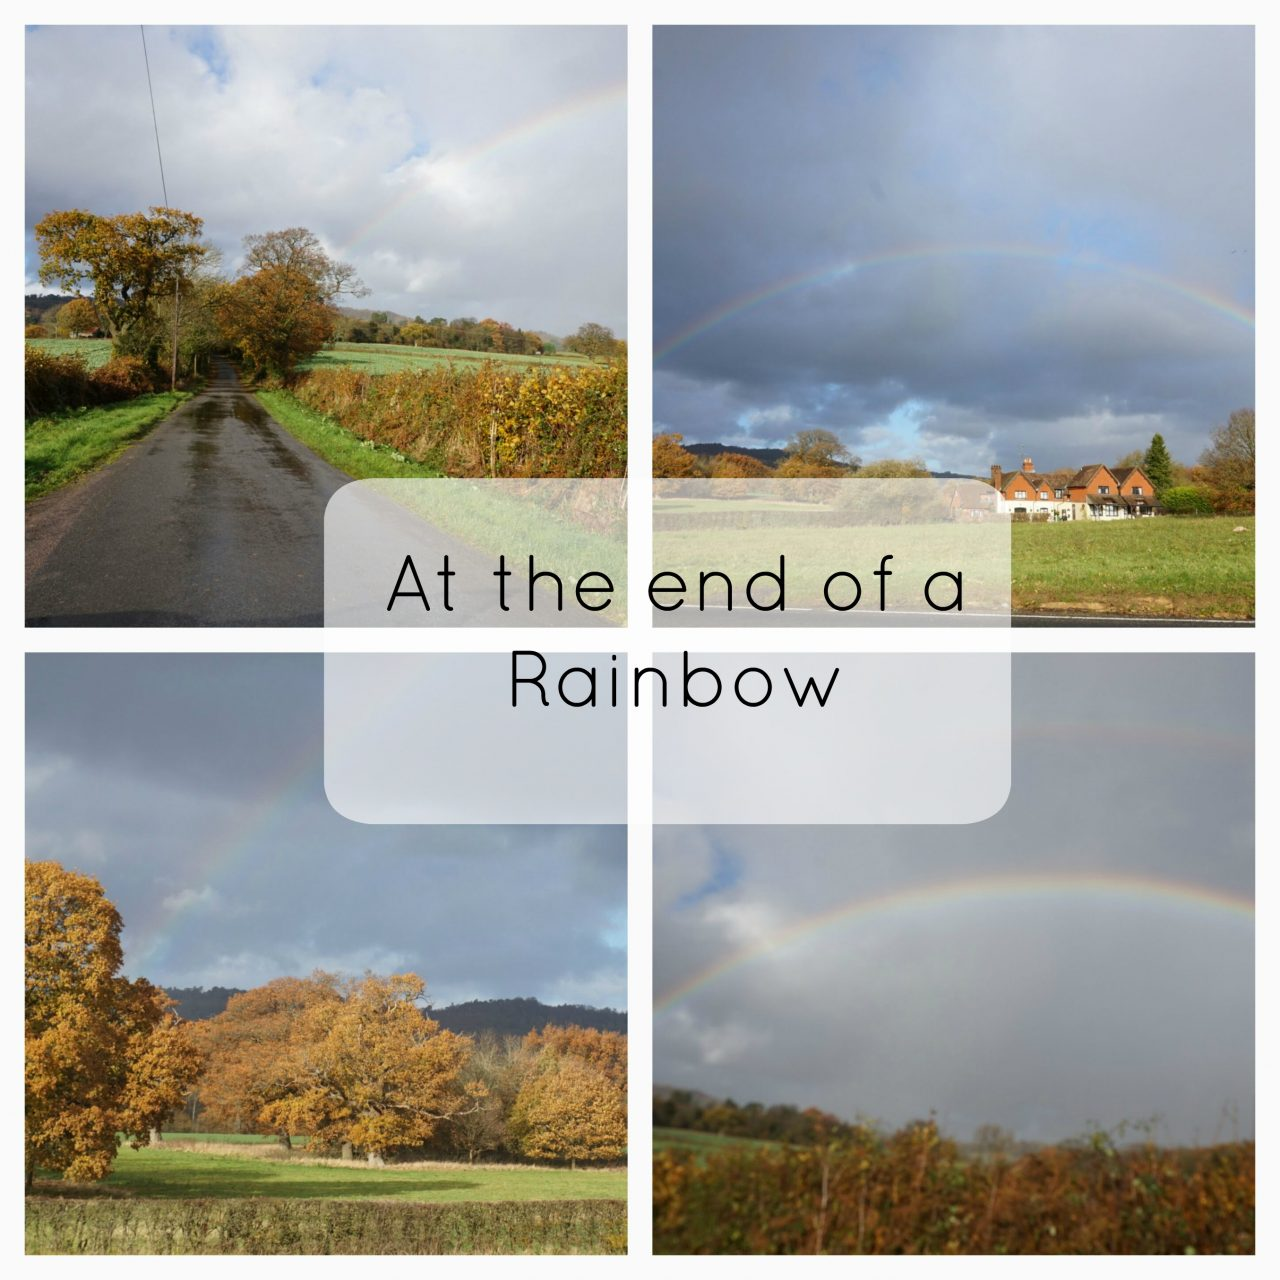 The truth about the end of a Rainbow